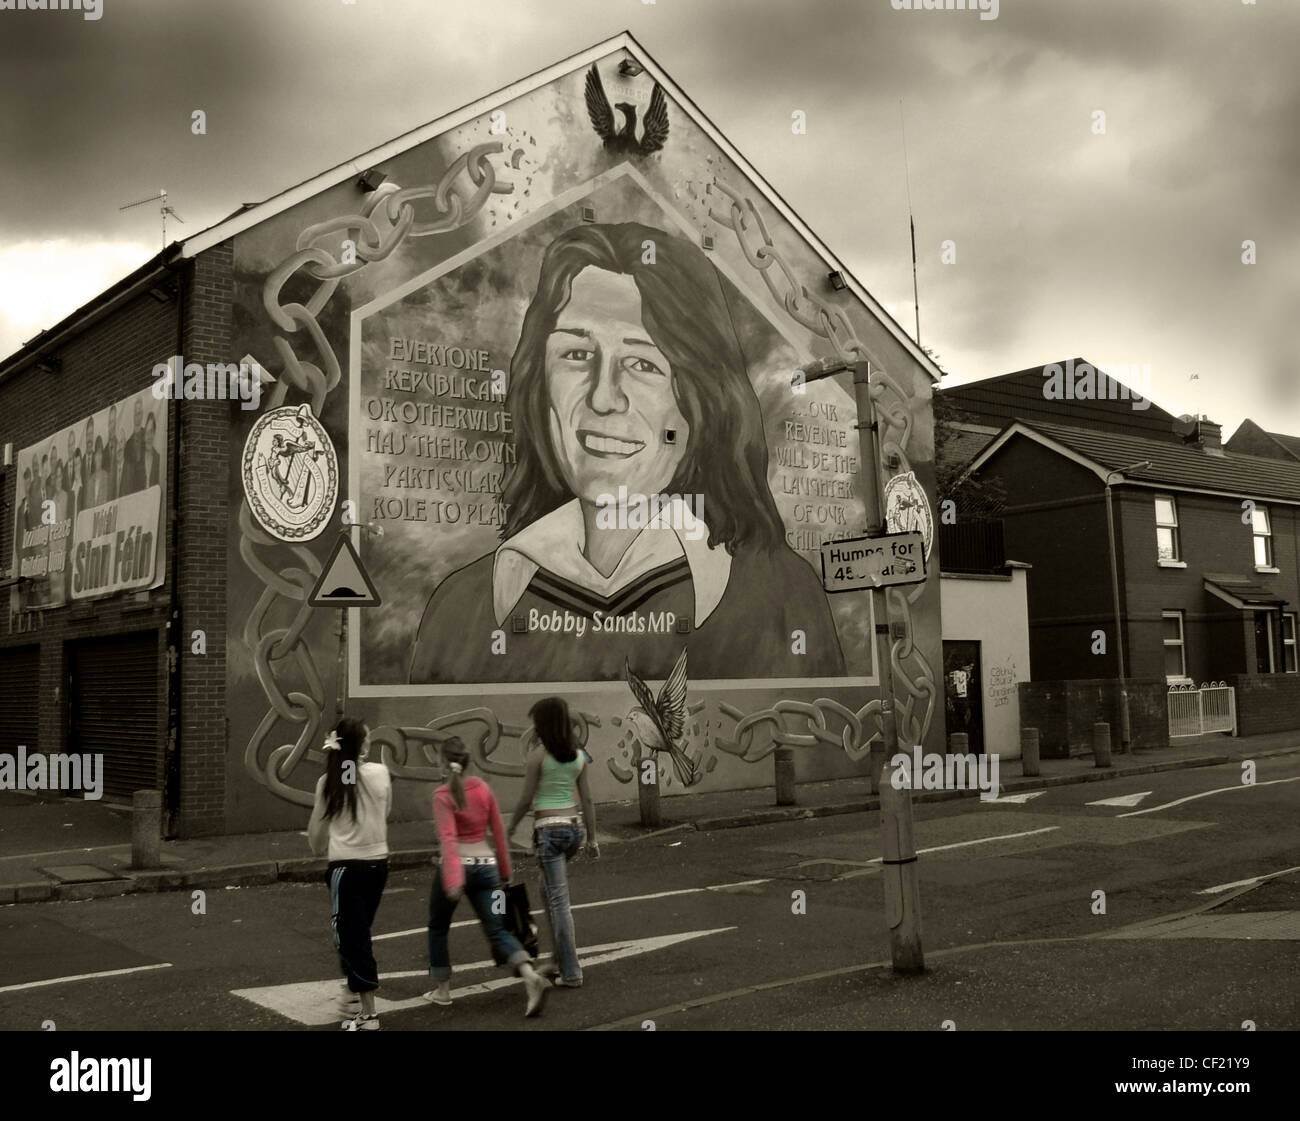 Sinn,Fein,office,Belfast.,Bobby,Sands,starved,himself,to,death,in,prison,as,part,of,the,campaign,to,obtain,Mural,Falls,Rd,Road,future children peace sharing good friday agreement catholics gotonysmith,rd,Falls Road,catholic,community,Belfast Catholic Comm,Political status,Falls Rd,Falls Road,Hotpix hotpixuk,gotonysmith,catholic,community,catholics,Buy Pictures of,Buy Images Of,Belfast Catholic Community